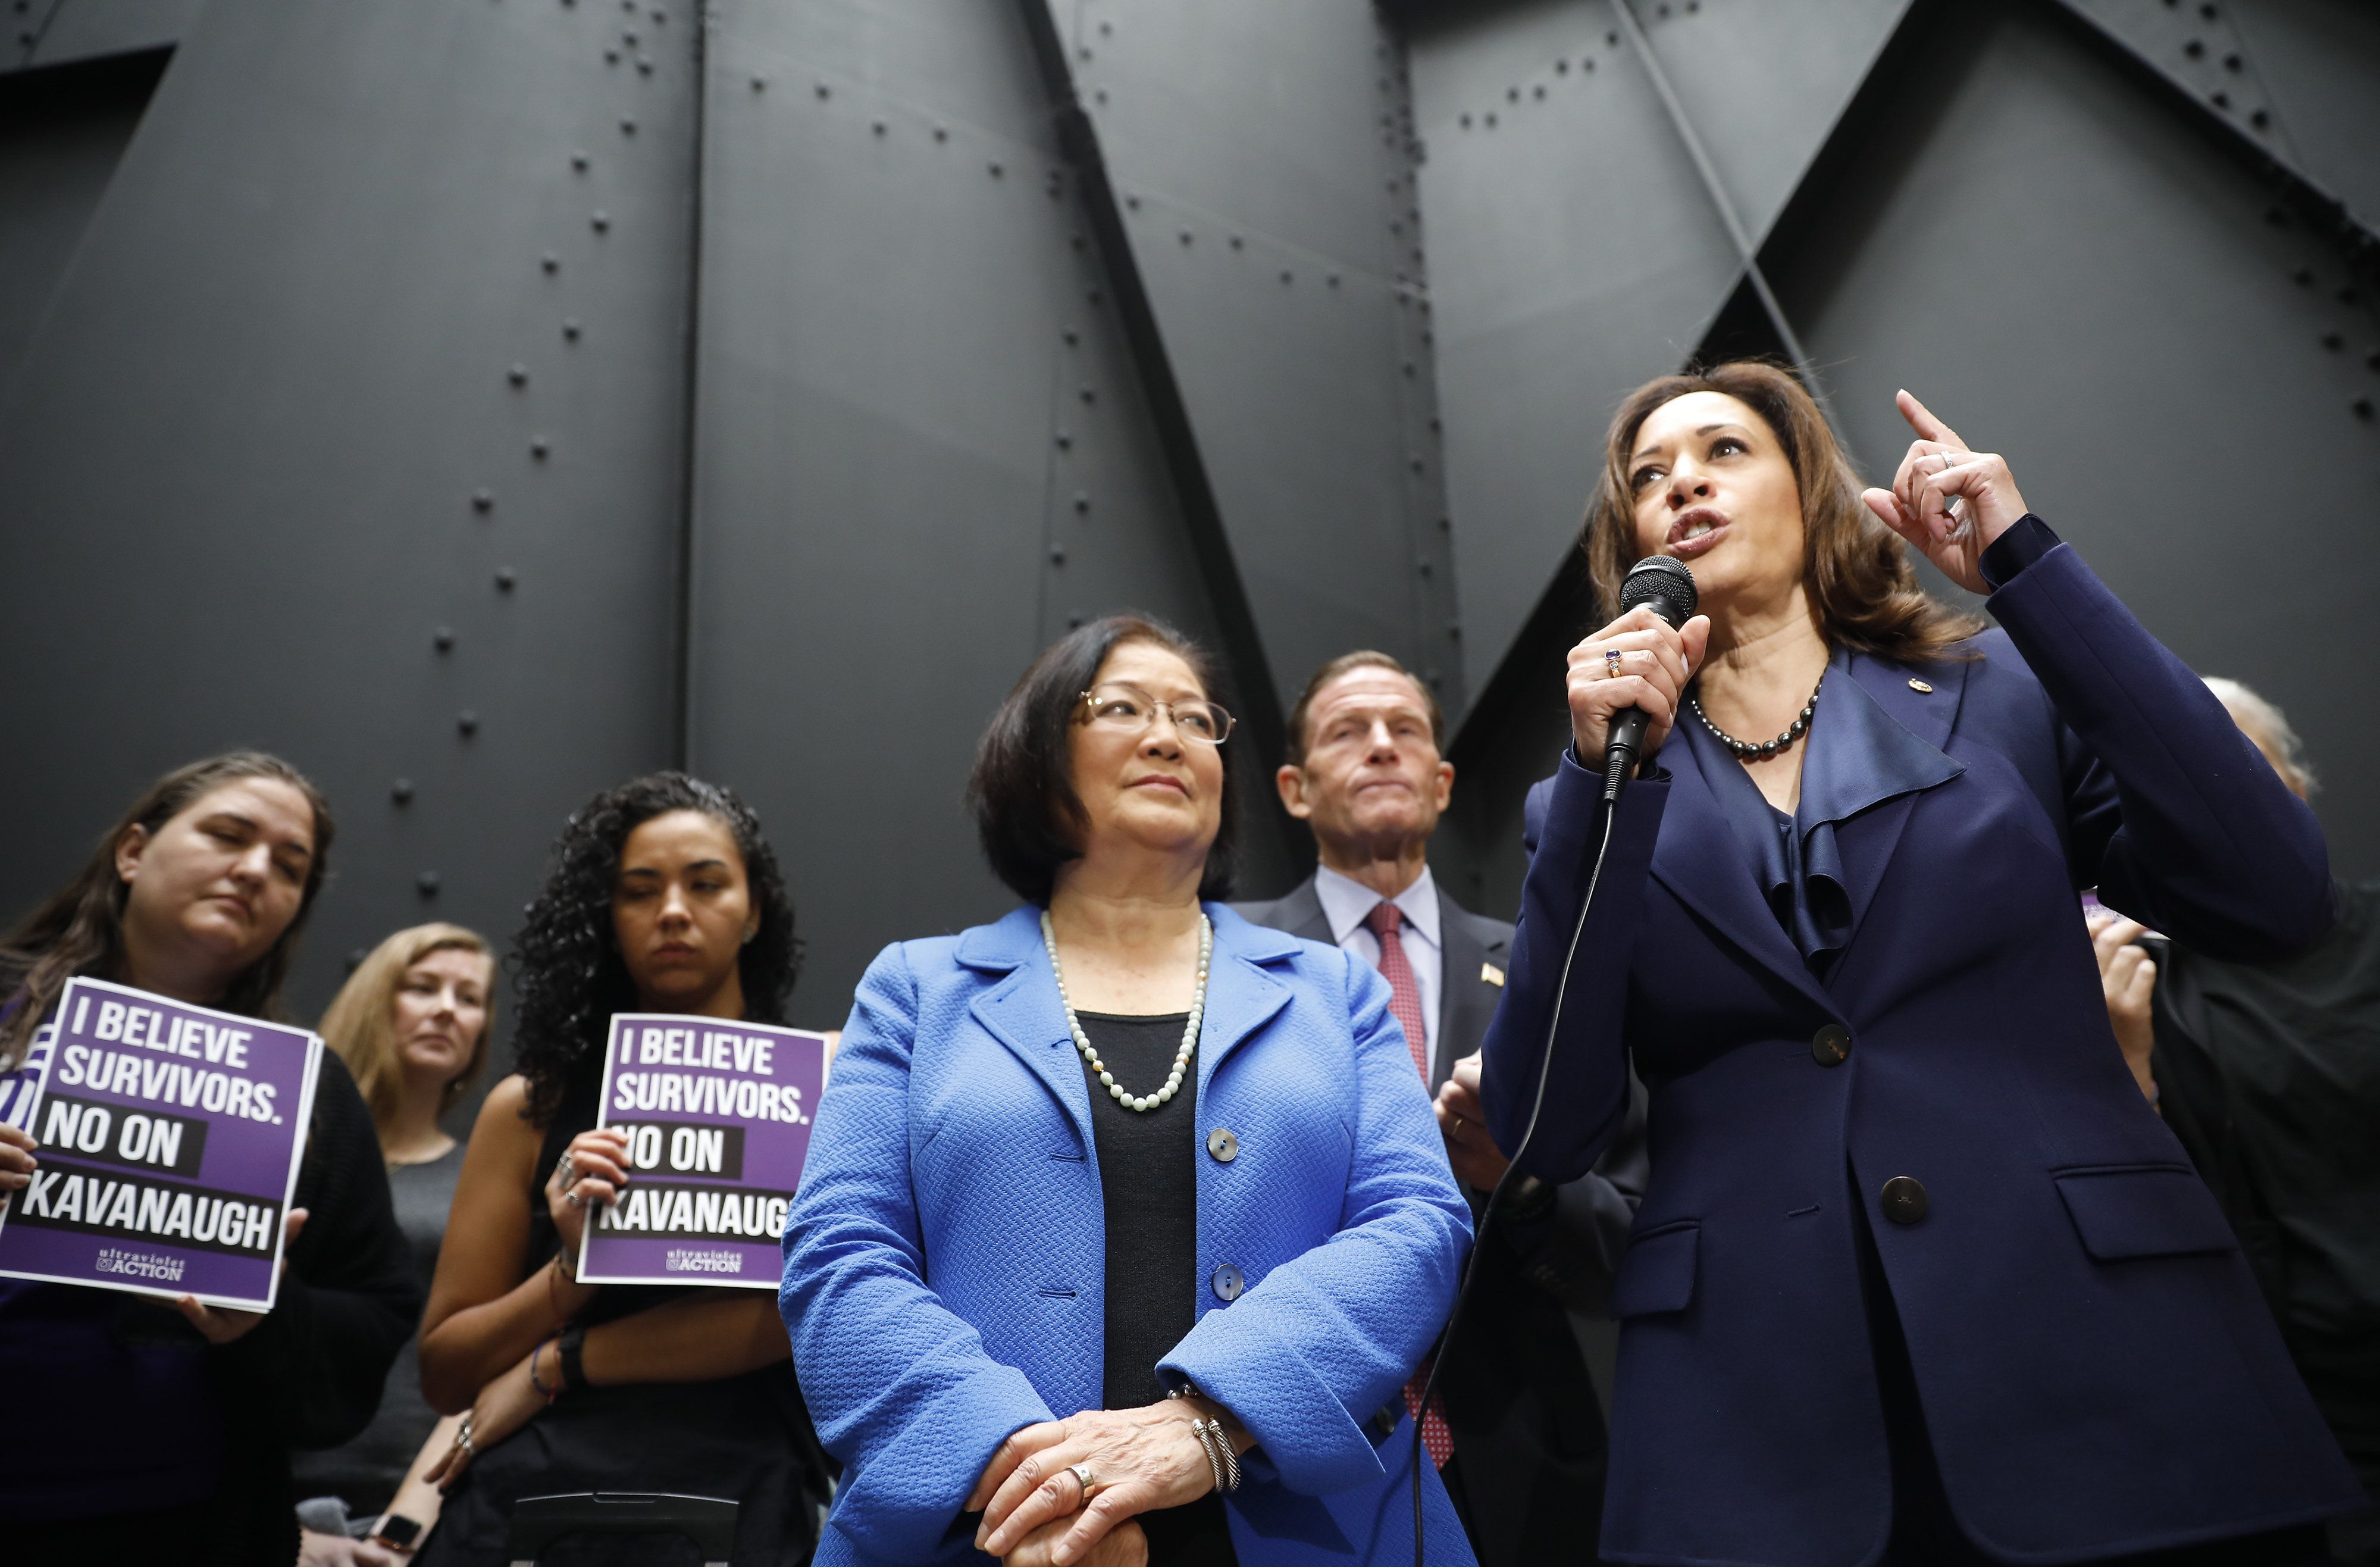 Senator Kamala Harris, a Democrat from California, right, speaks to members of the media after walking out of a markup hearing as Senator Mazie Hirono, a Democrat from Hawaii, listens in Washington, D.C., U.S., on Friday, Sept. 28, 2018. Supreme Court nominee Brett Kavanaugh appears headed toward approval by the Senate Judiciary Committee after pivotal GOP Senator Jeff Flake said he'll vote to confirm the nominee. Photographer: Aaron P. Bernstein/Bloomberg via Getty Images